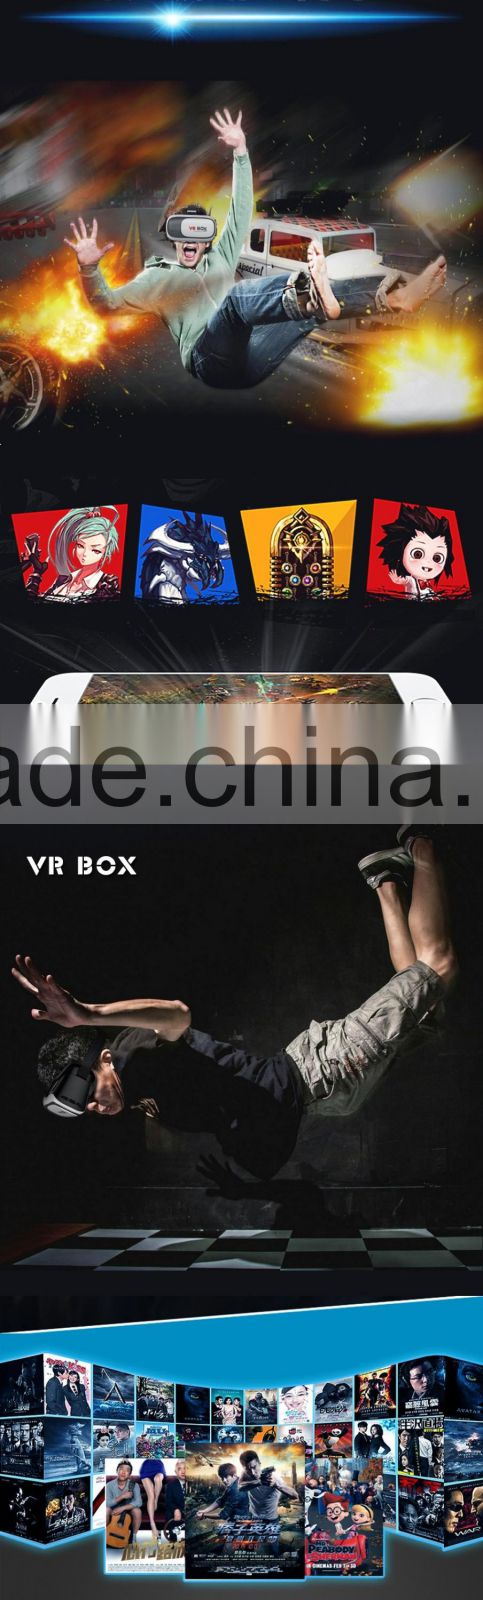 "Head Mount Plastic VR BOX Version 3d Glasses 3D Movie for 3.5"" - 6.0"" Smart Phone Good For Japan Sex Girl offering dropshipping"